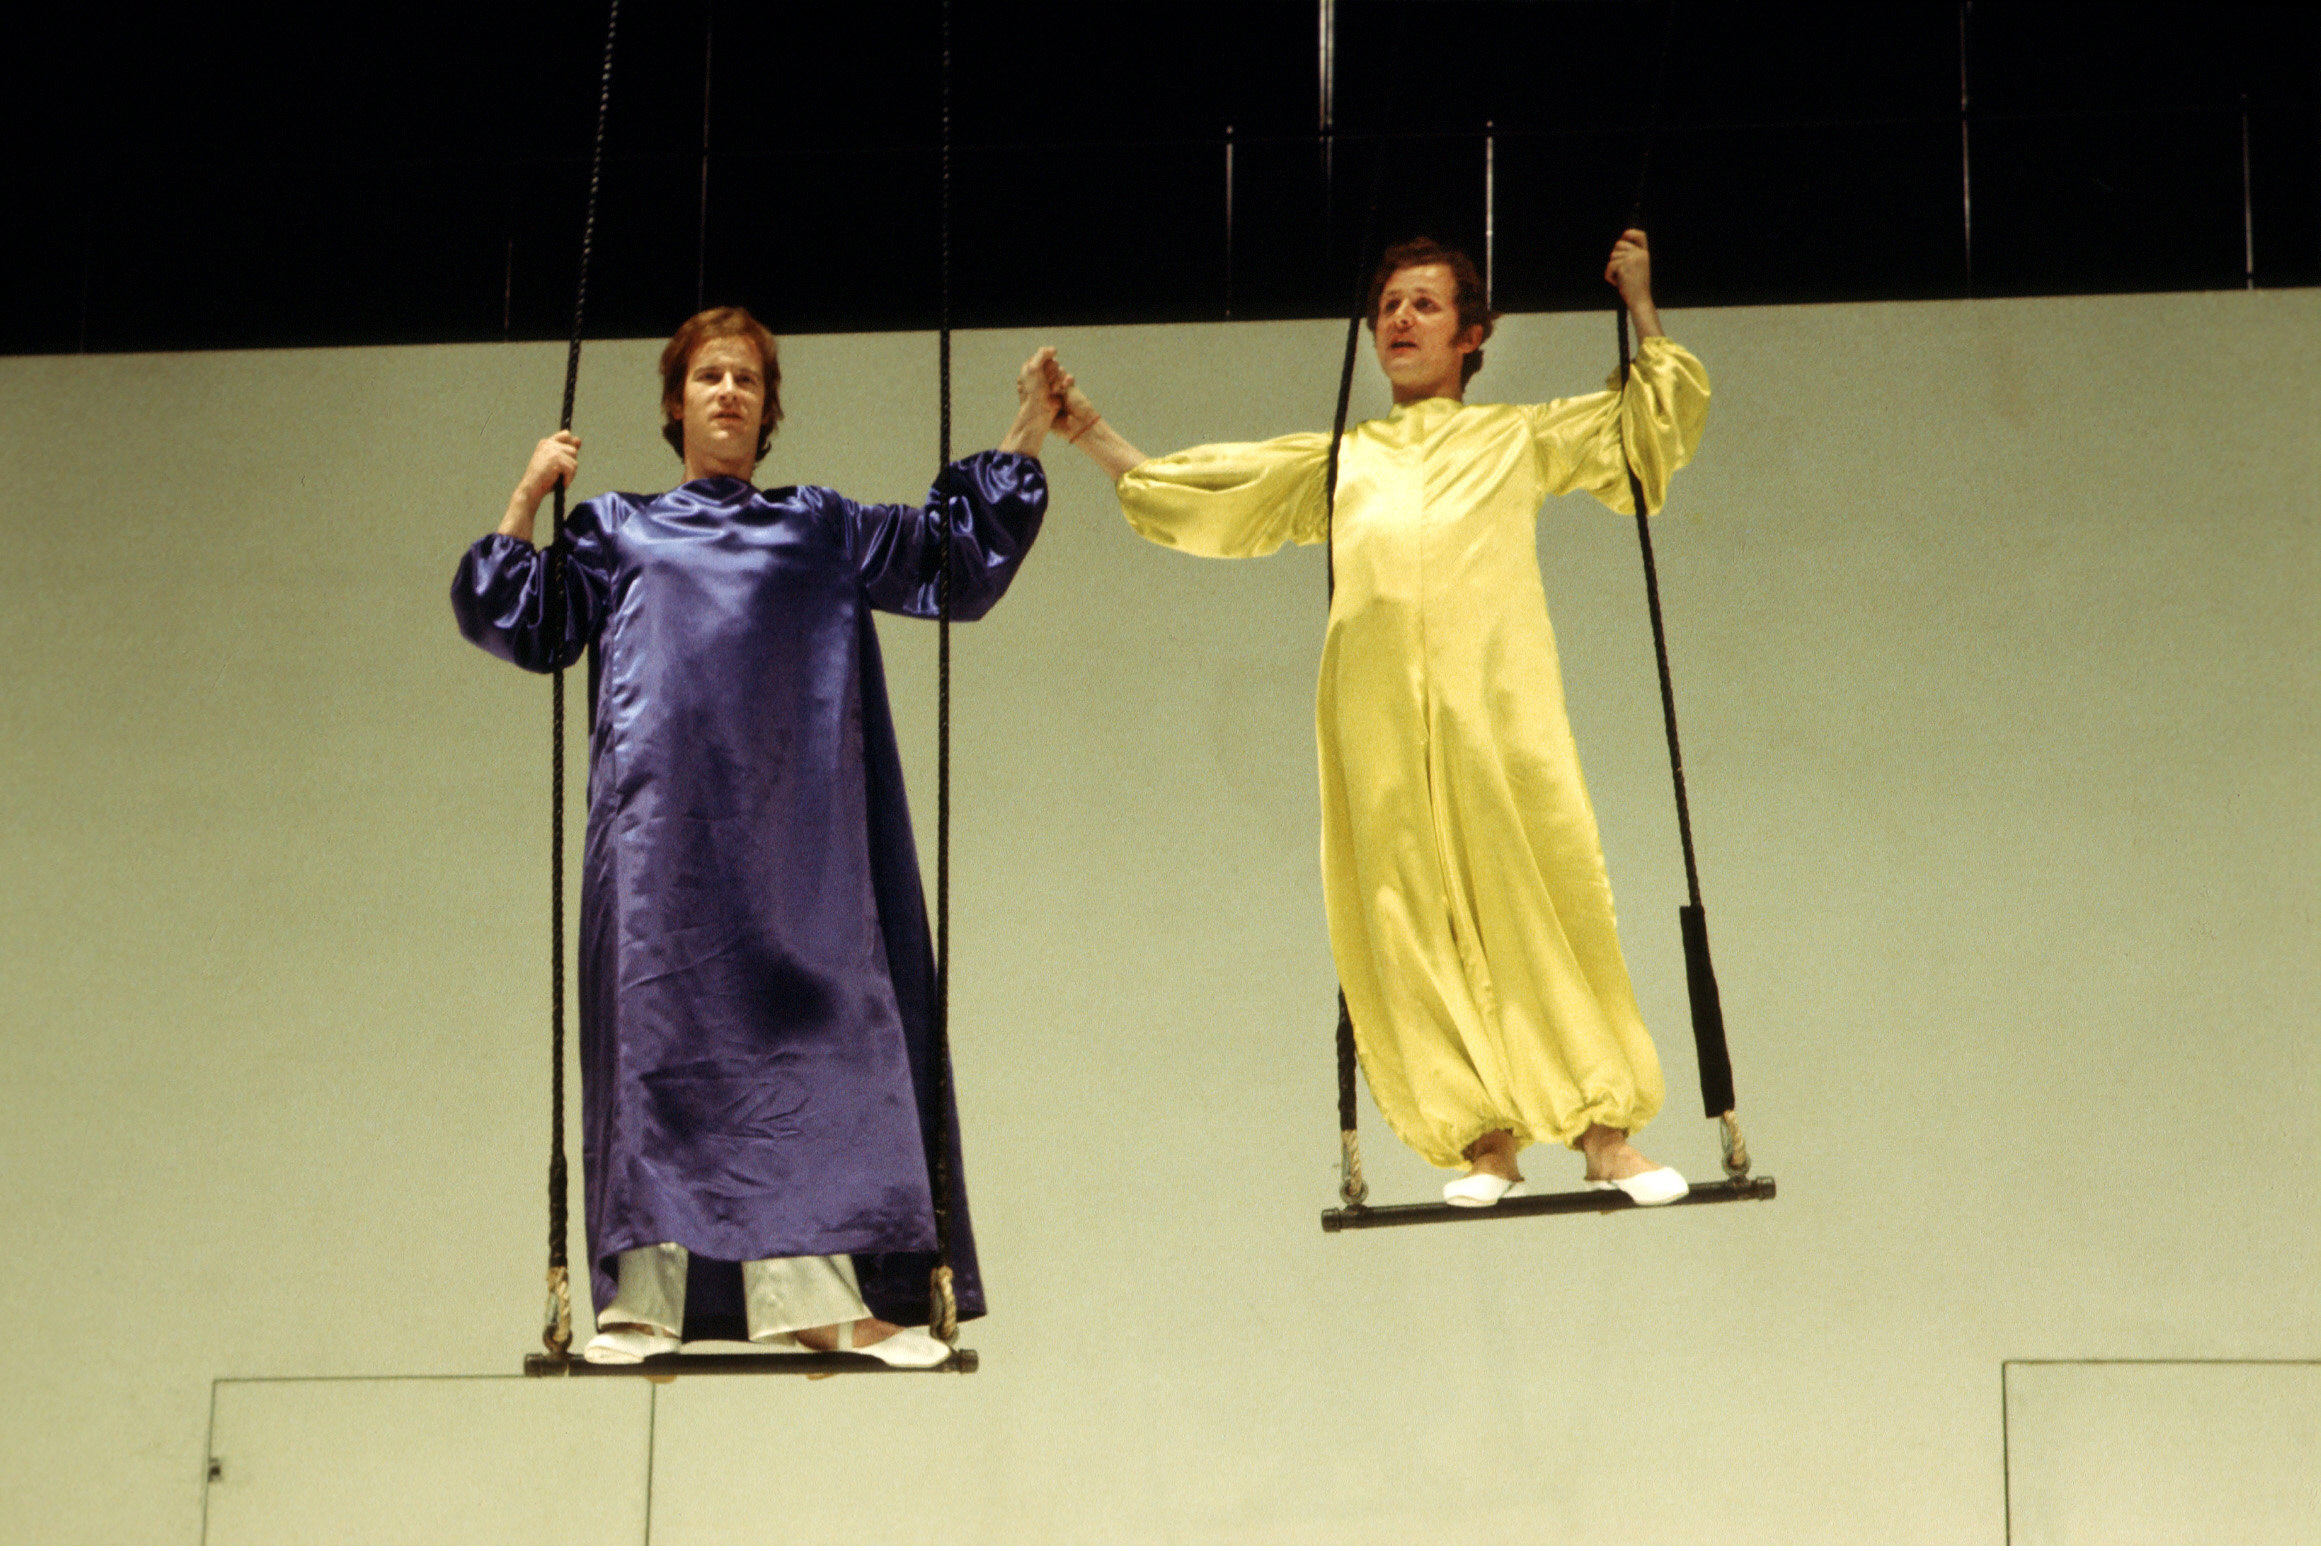 Photograph of Alan Howard and John Kane in Peter Brook's production of A Midsummer Night's Dream